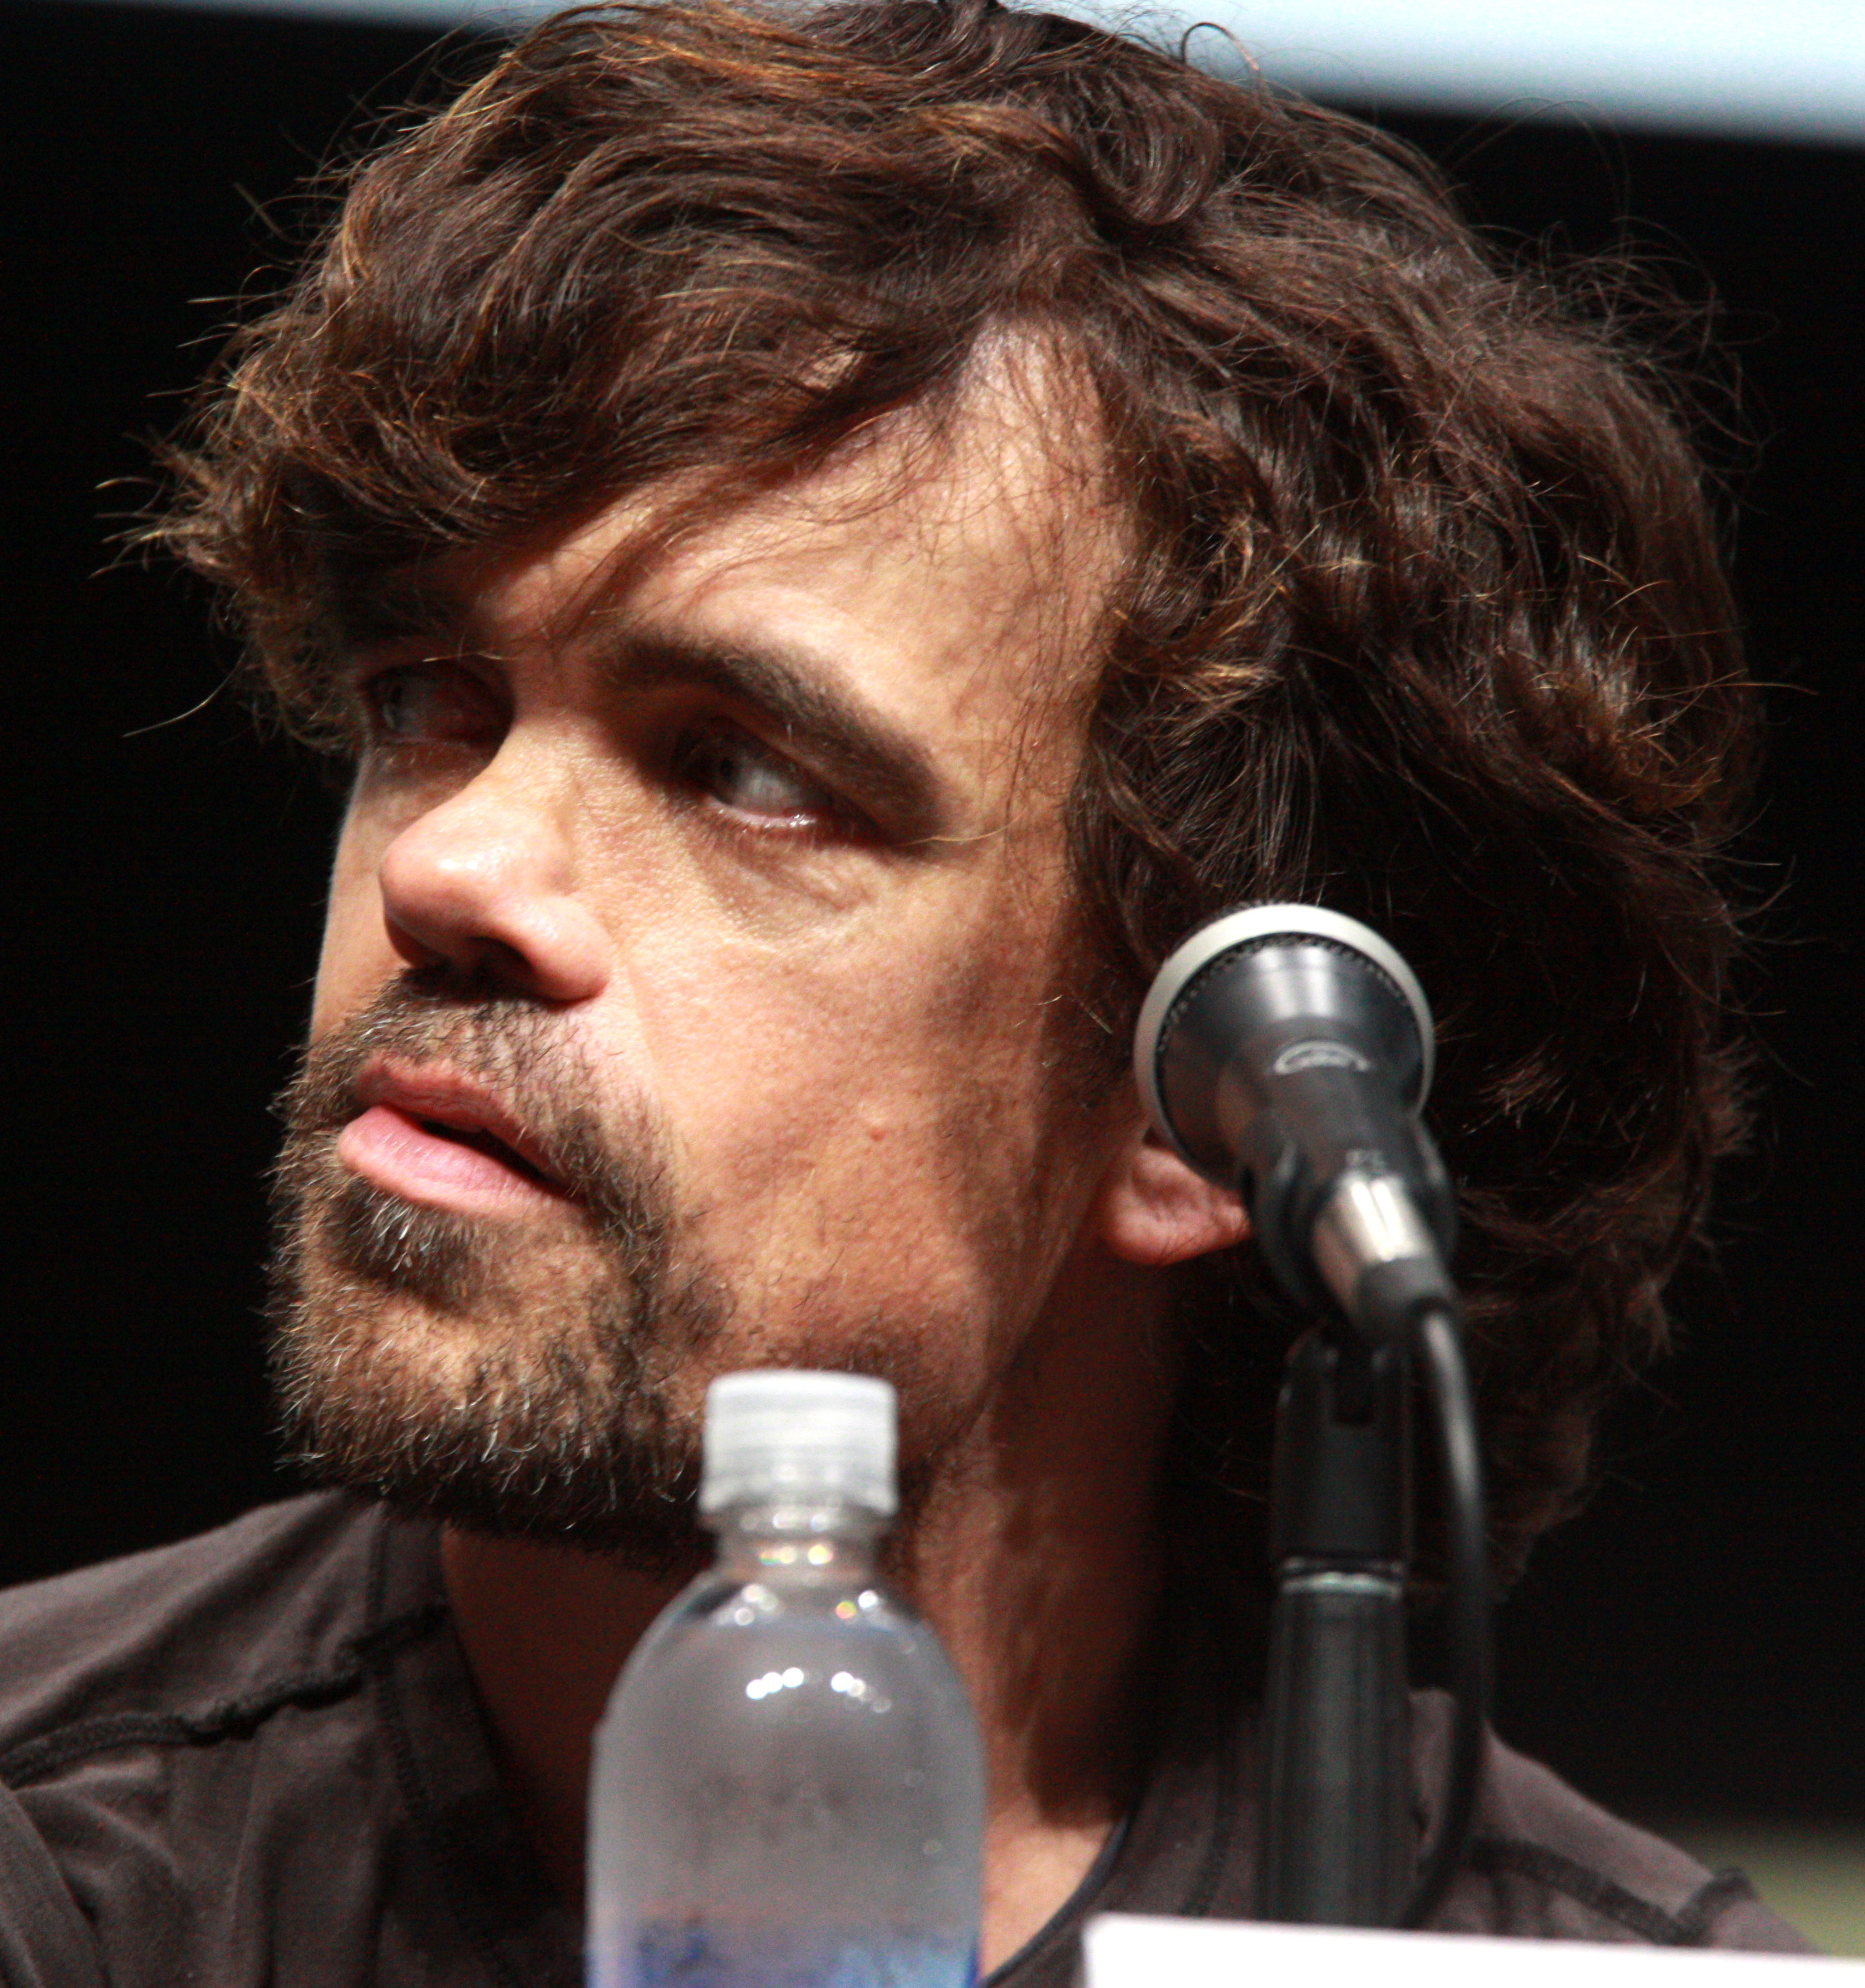 The 48-year old son of father (?) and mother(?), 135 cm tall Peter Dinklage in 2018 photo